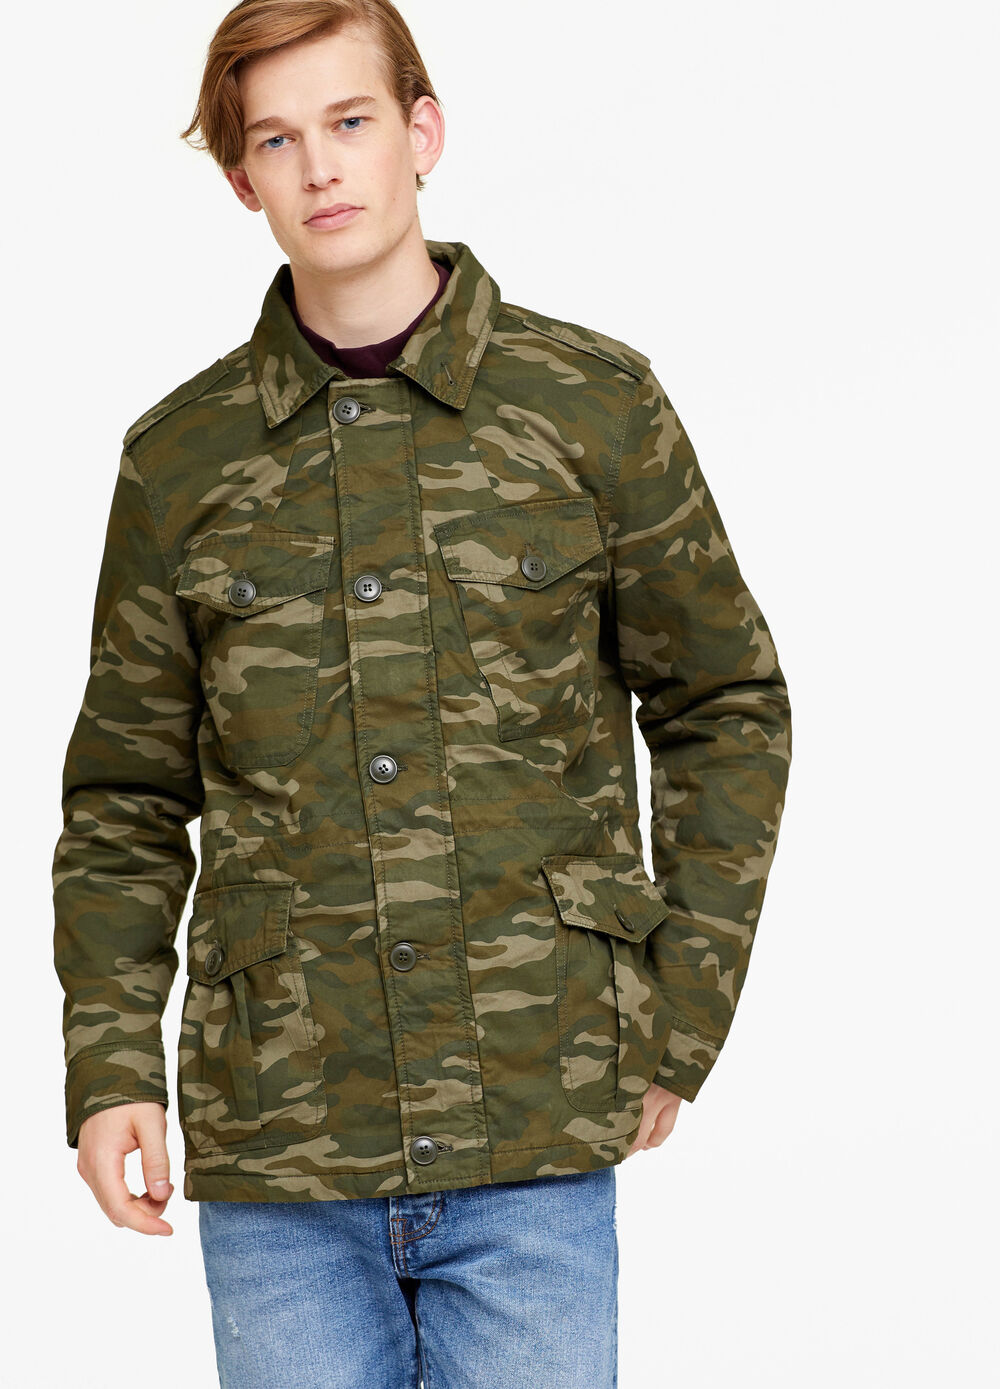 Cotton jacket with camouflage pattern